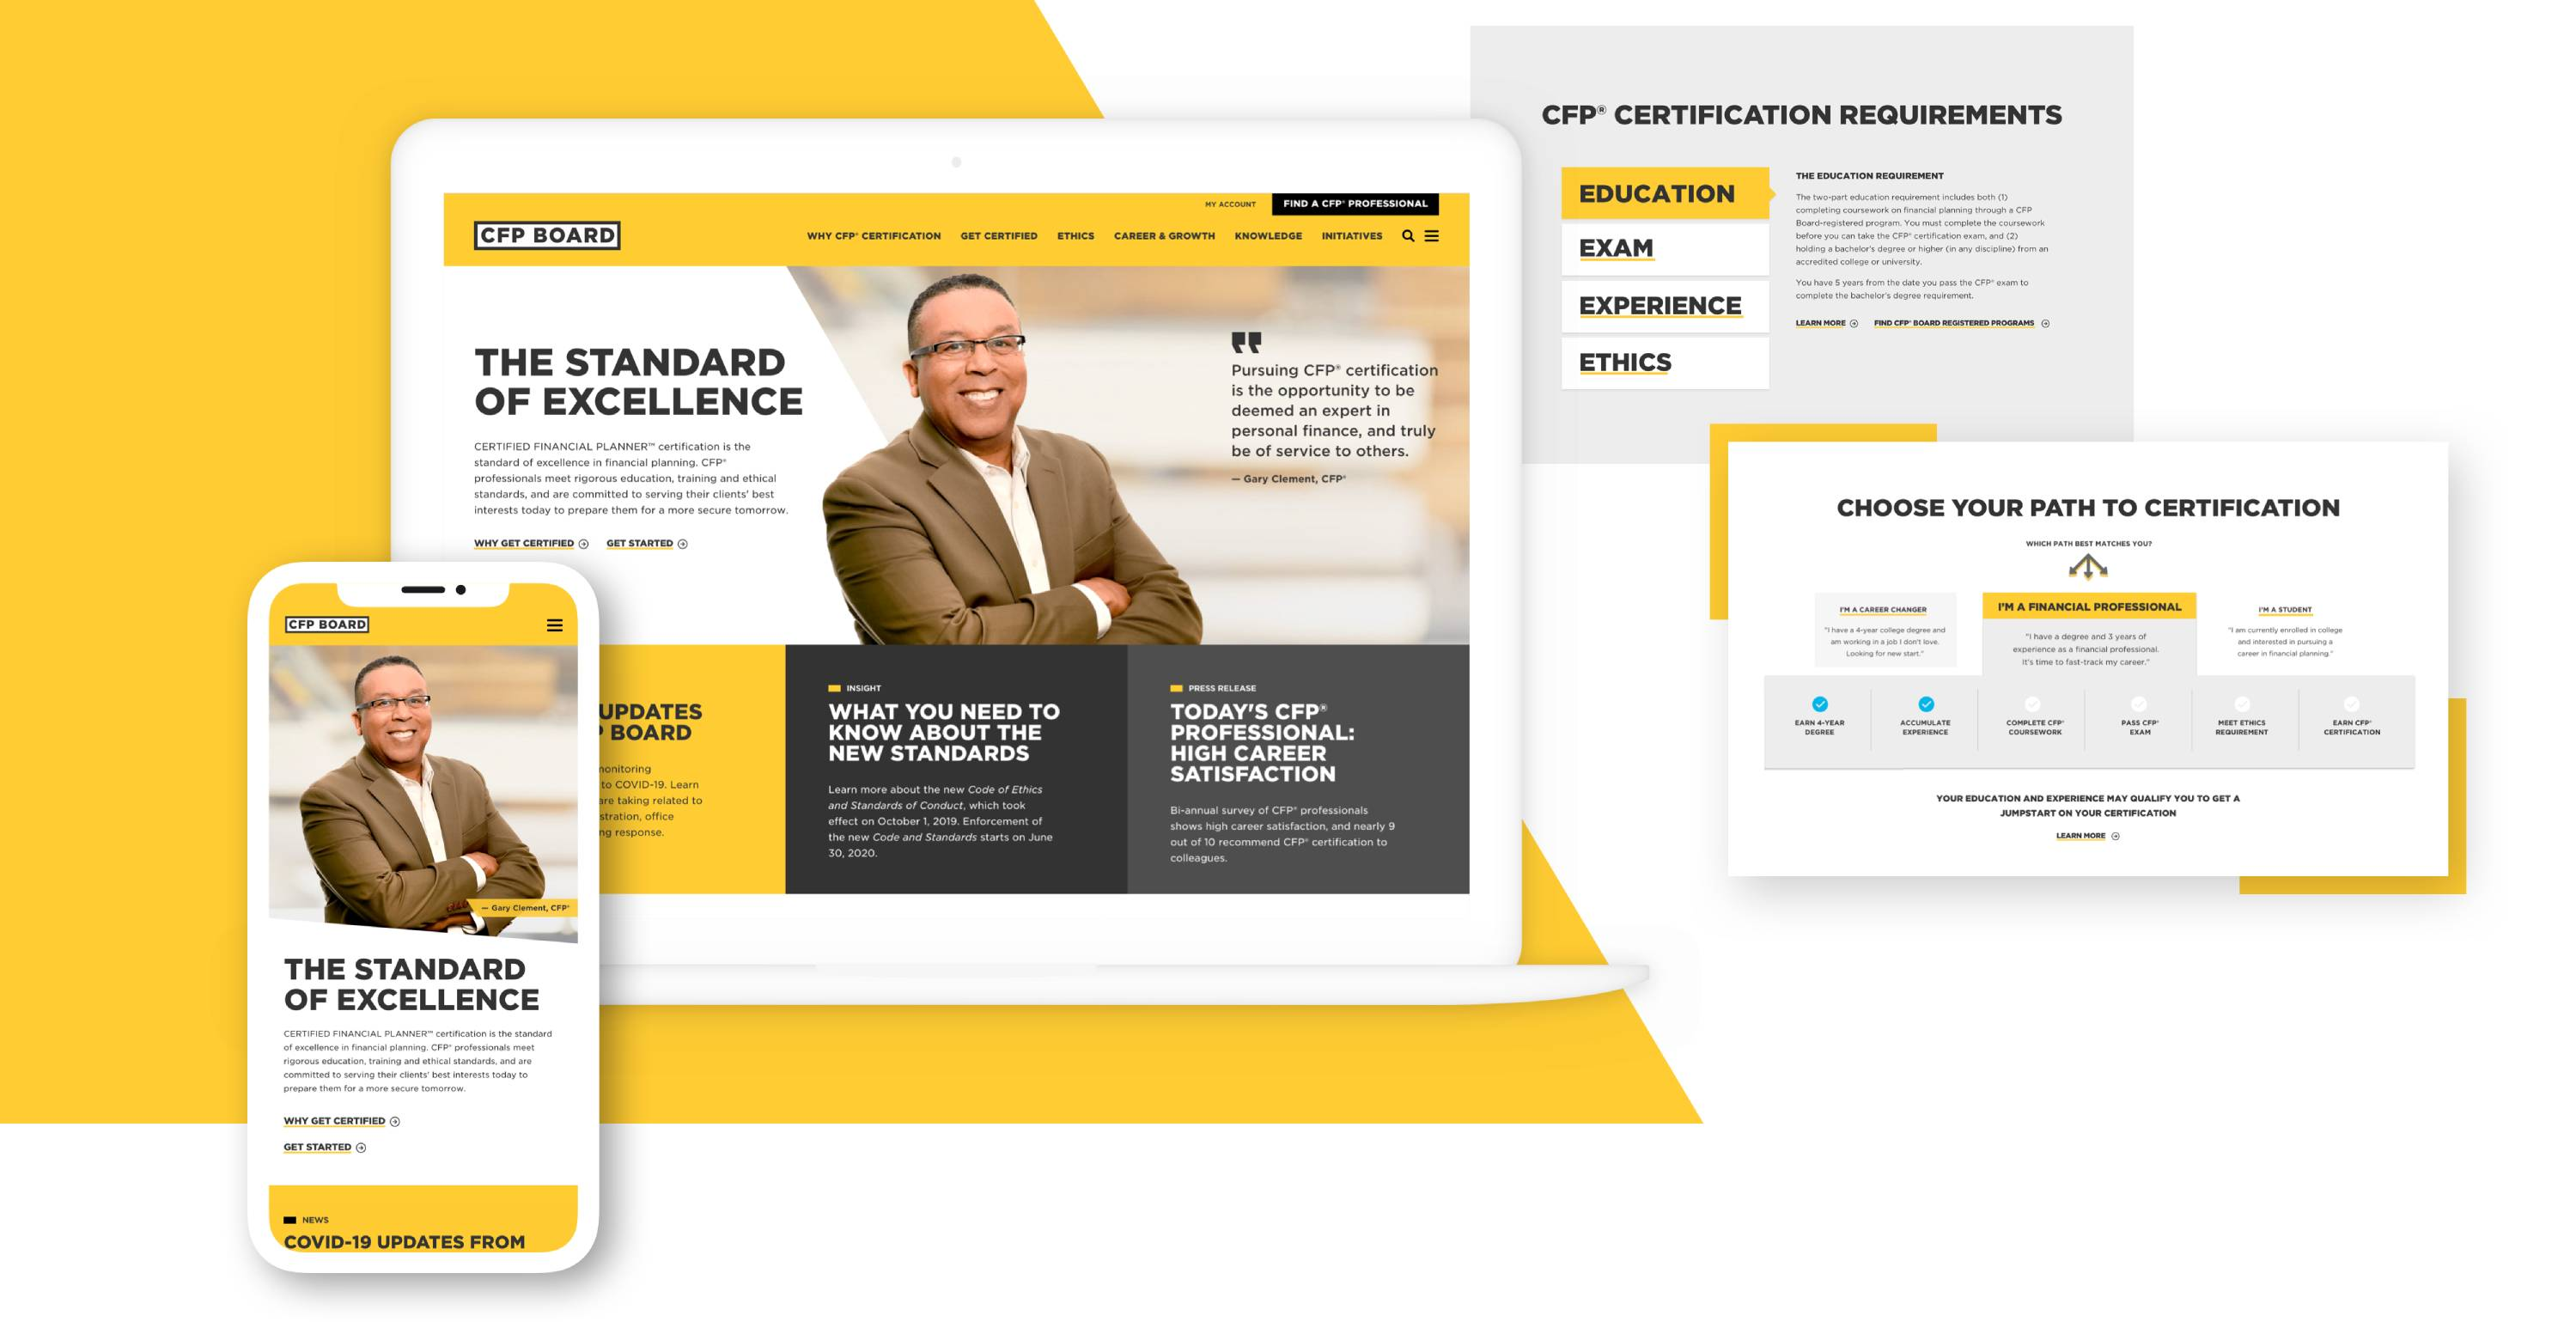 CFP Board site content examples